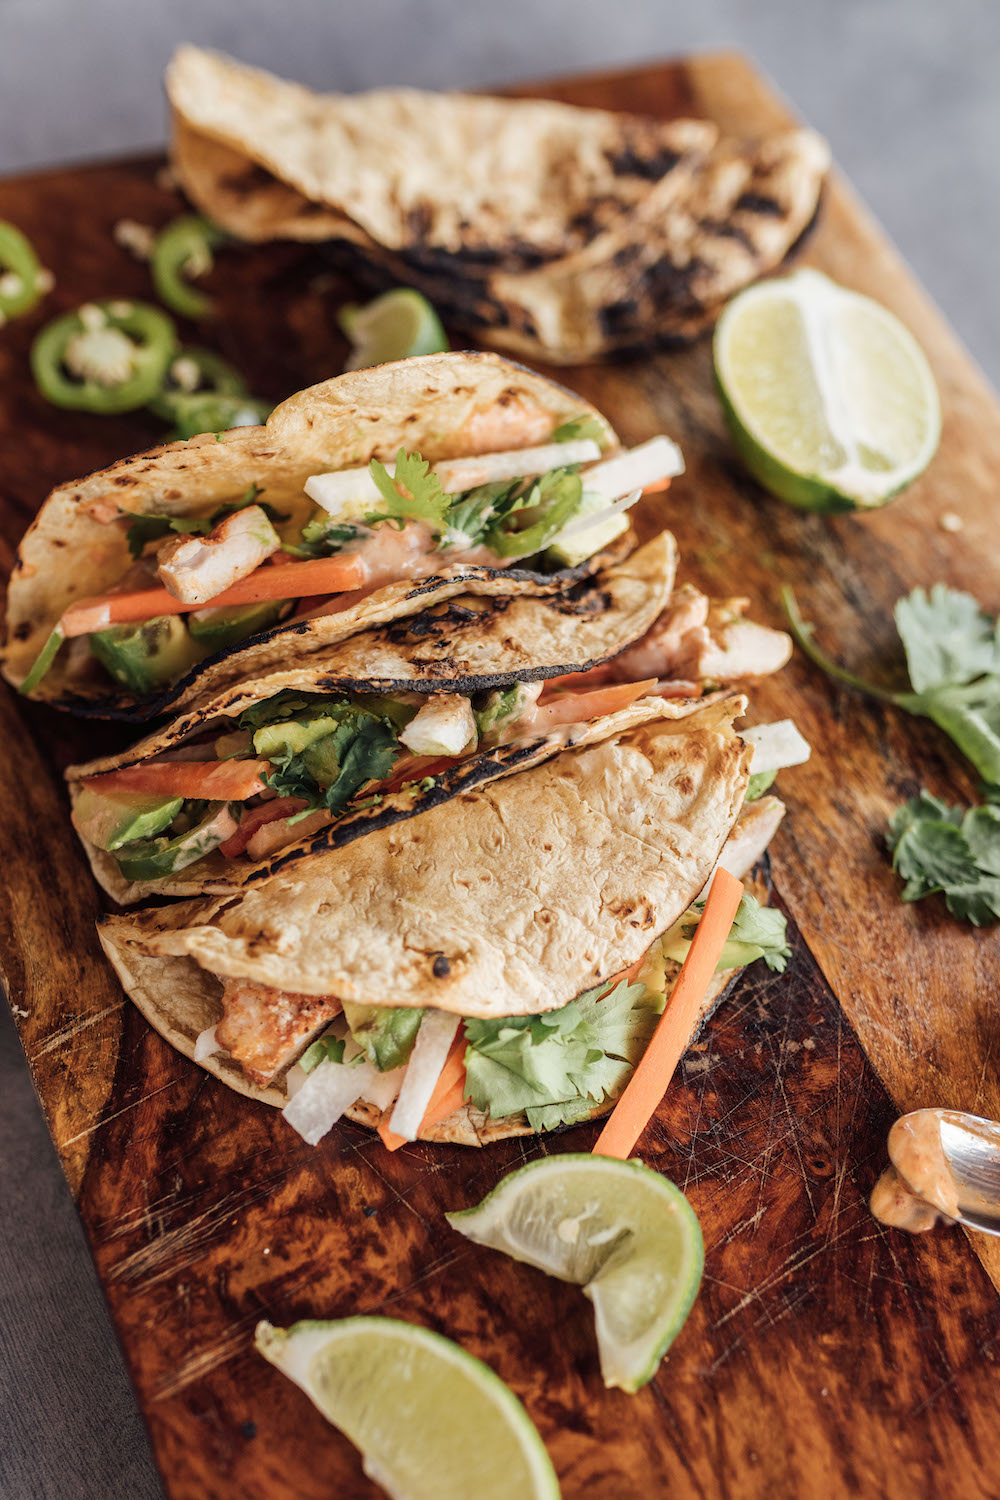 Lime-y Chicken Tacos with Jicama, Mint, Carrots, and Chipotle Aioli